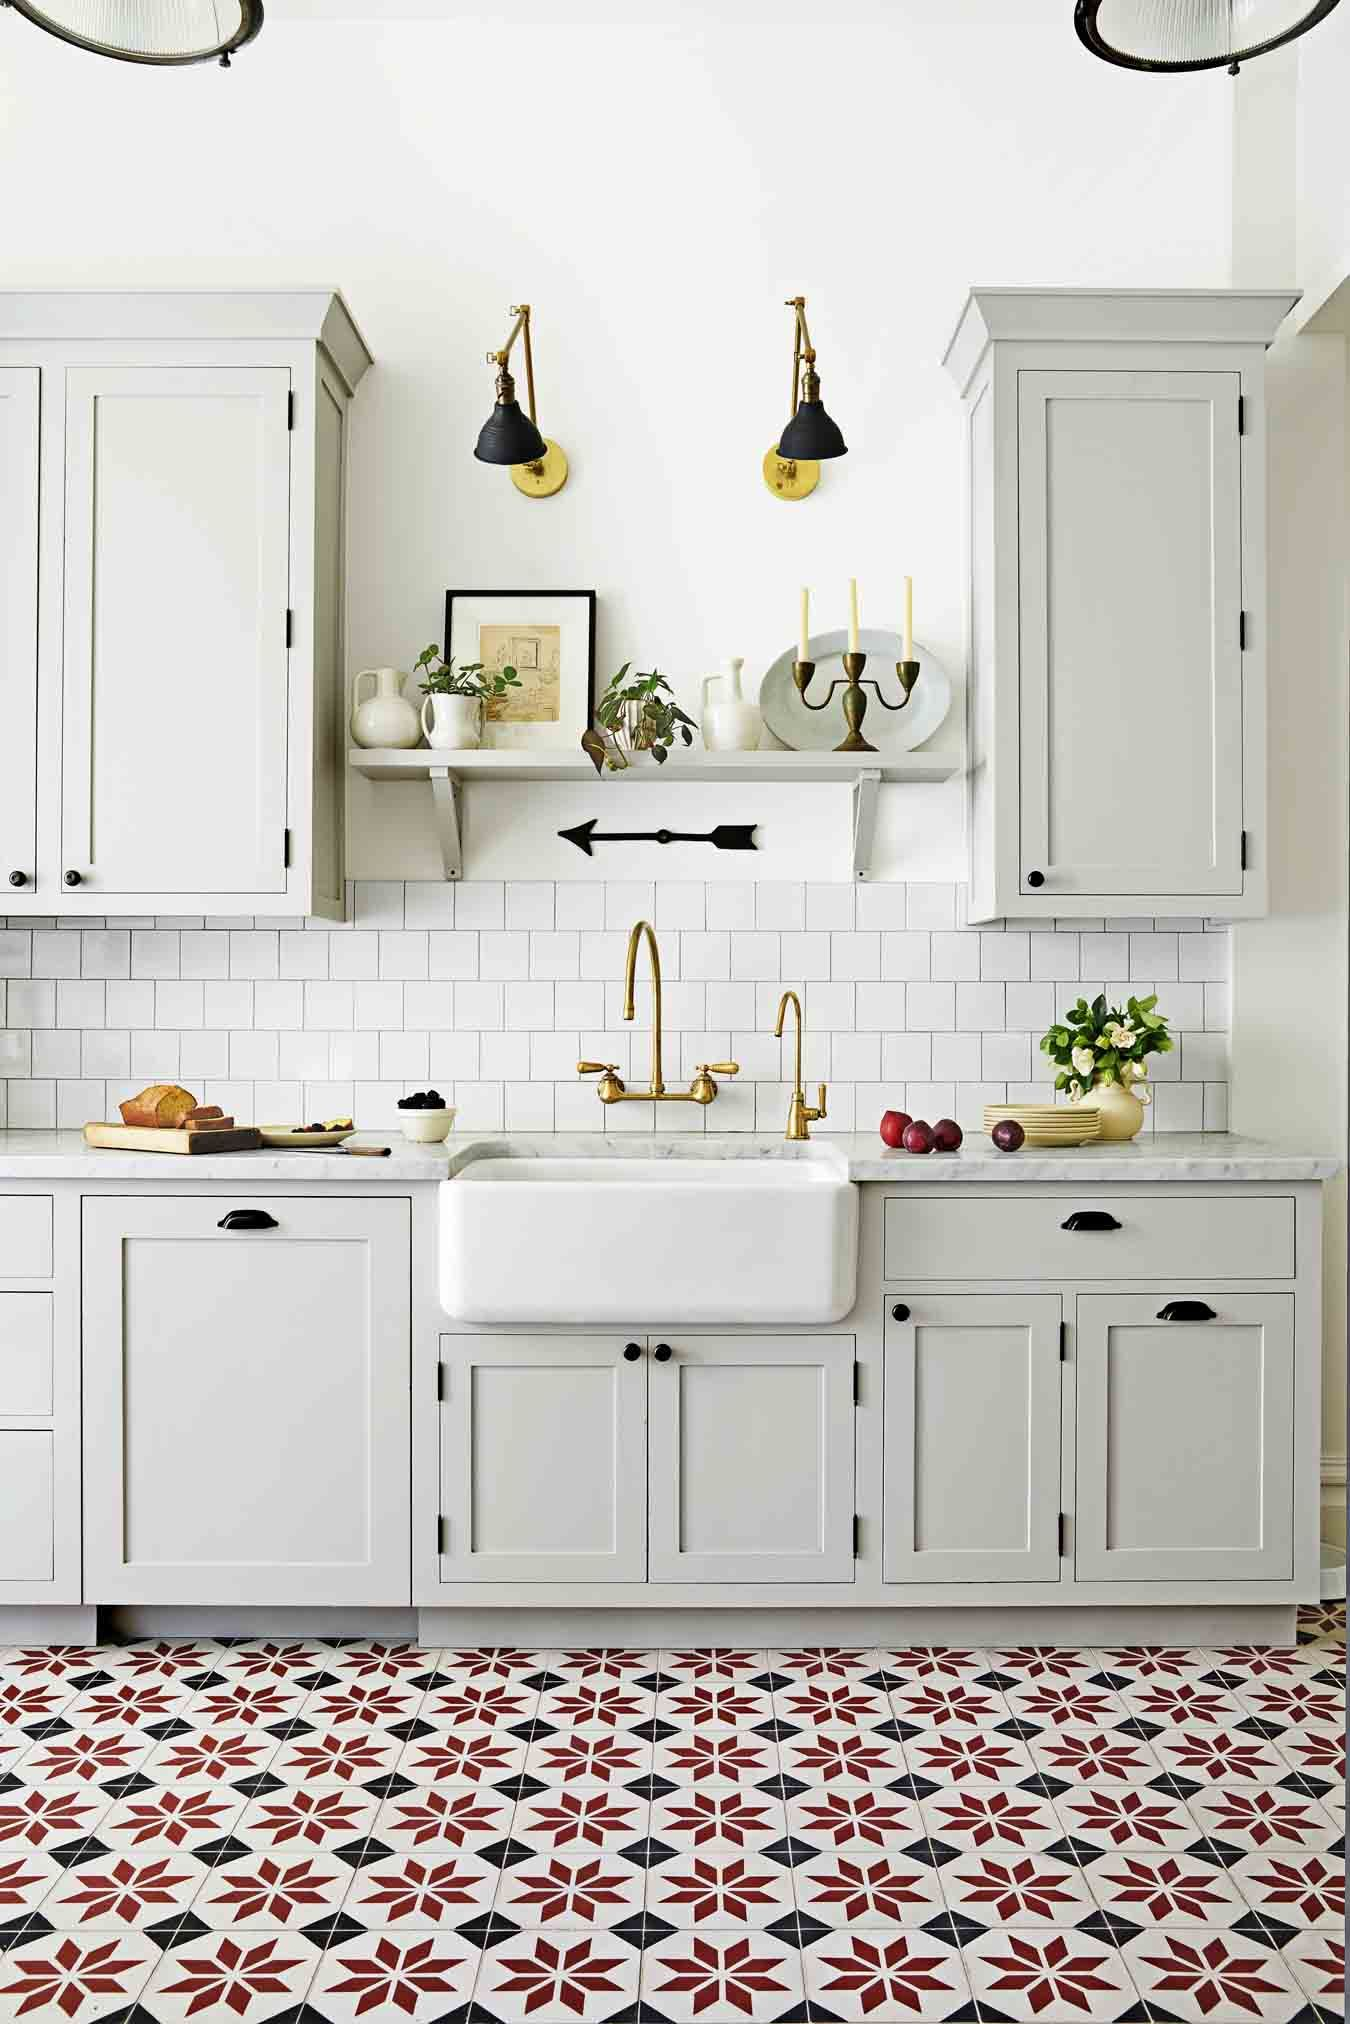 24 Best White Kitchens - Pictures of White Kitchen Design Ideas Ideas For Kitchen Cabinets White Tile Floor on ideas for white kitchen cabinets, ideas for white bathroom tile, ideas for white kitchen backsplash,